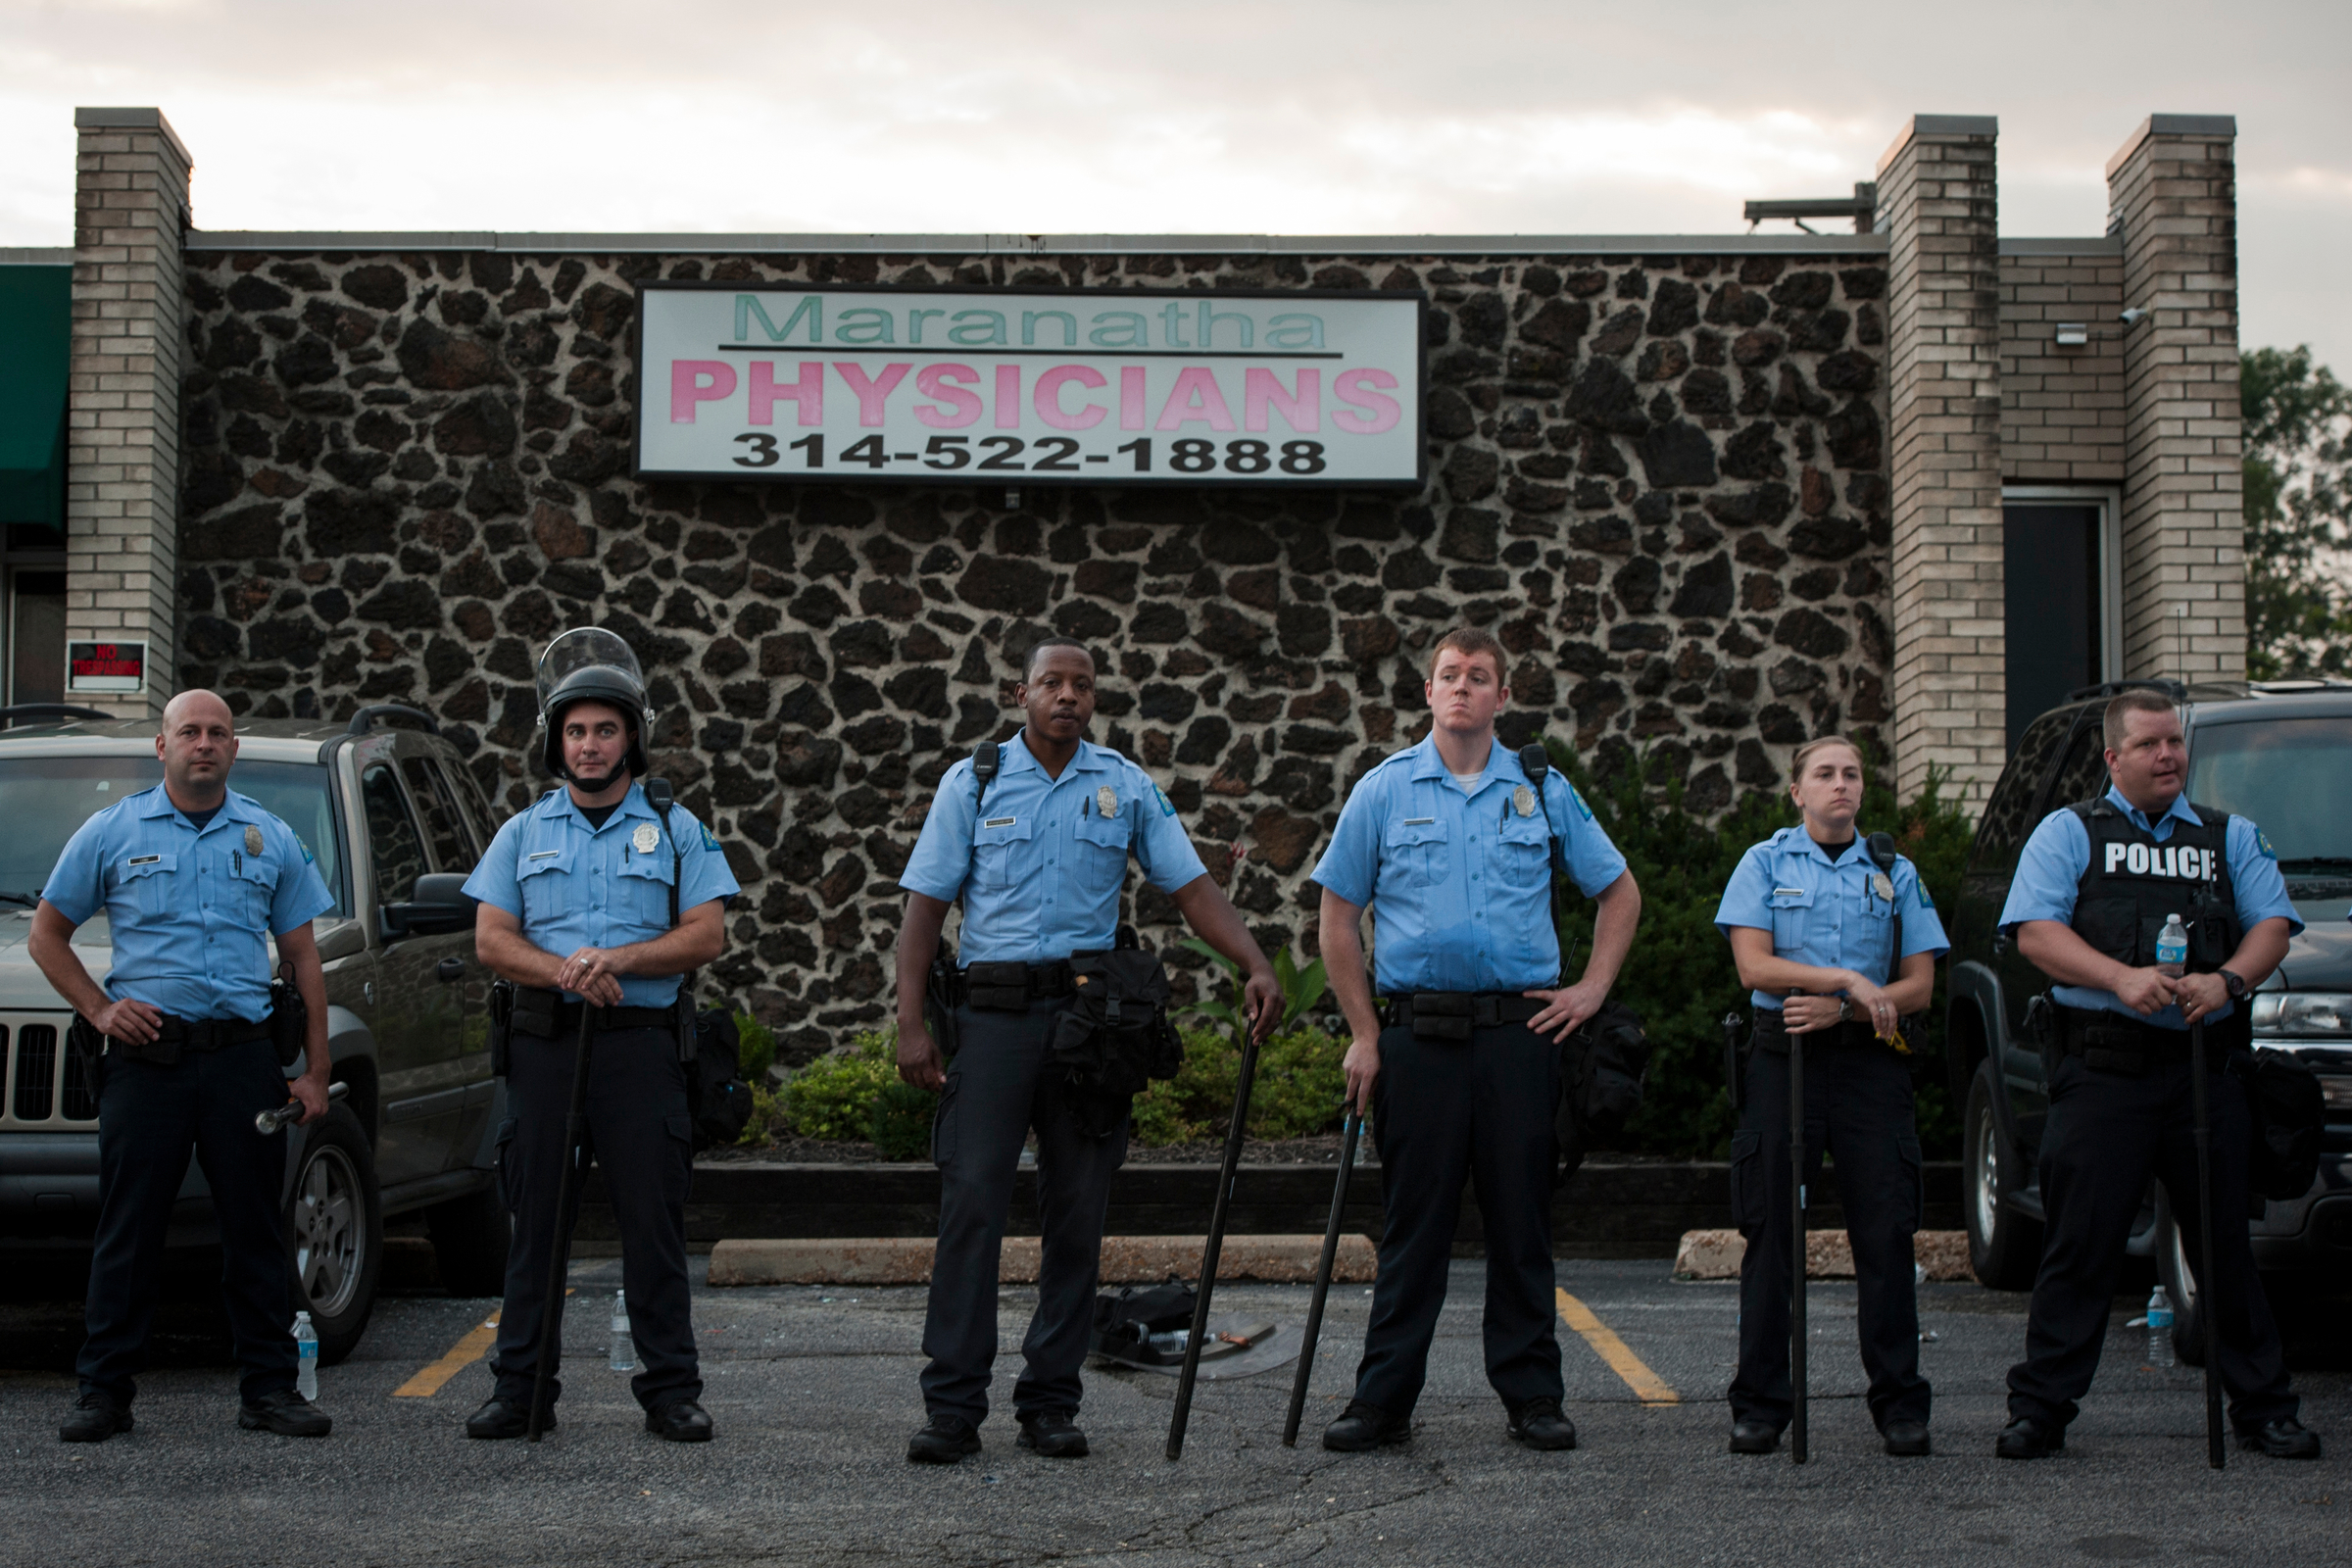 Police officers, some with riot gear, survey the growing crowds and prepare for potentially another night of violent protests in Ferguson, Mo. after a day of peaceful tension in the city. Some business owners armed themselves to prevent repeat looting.